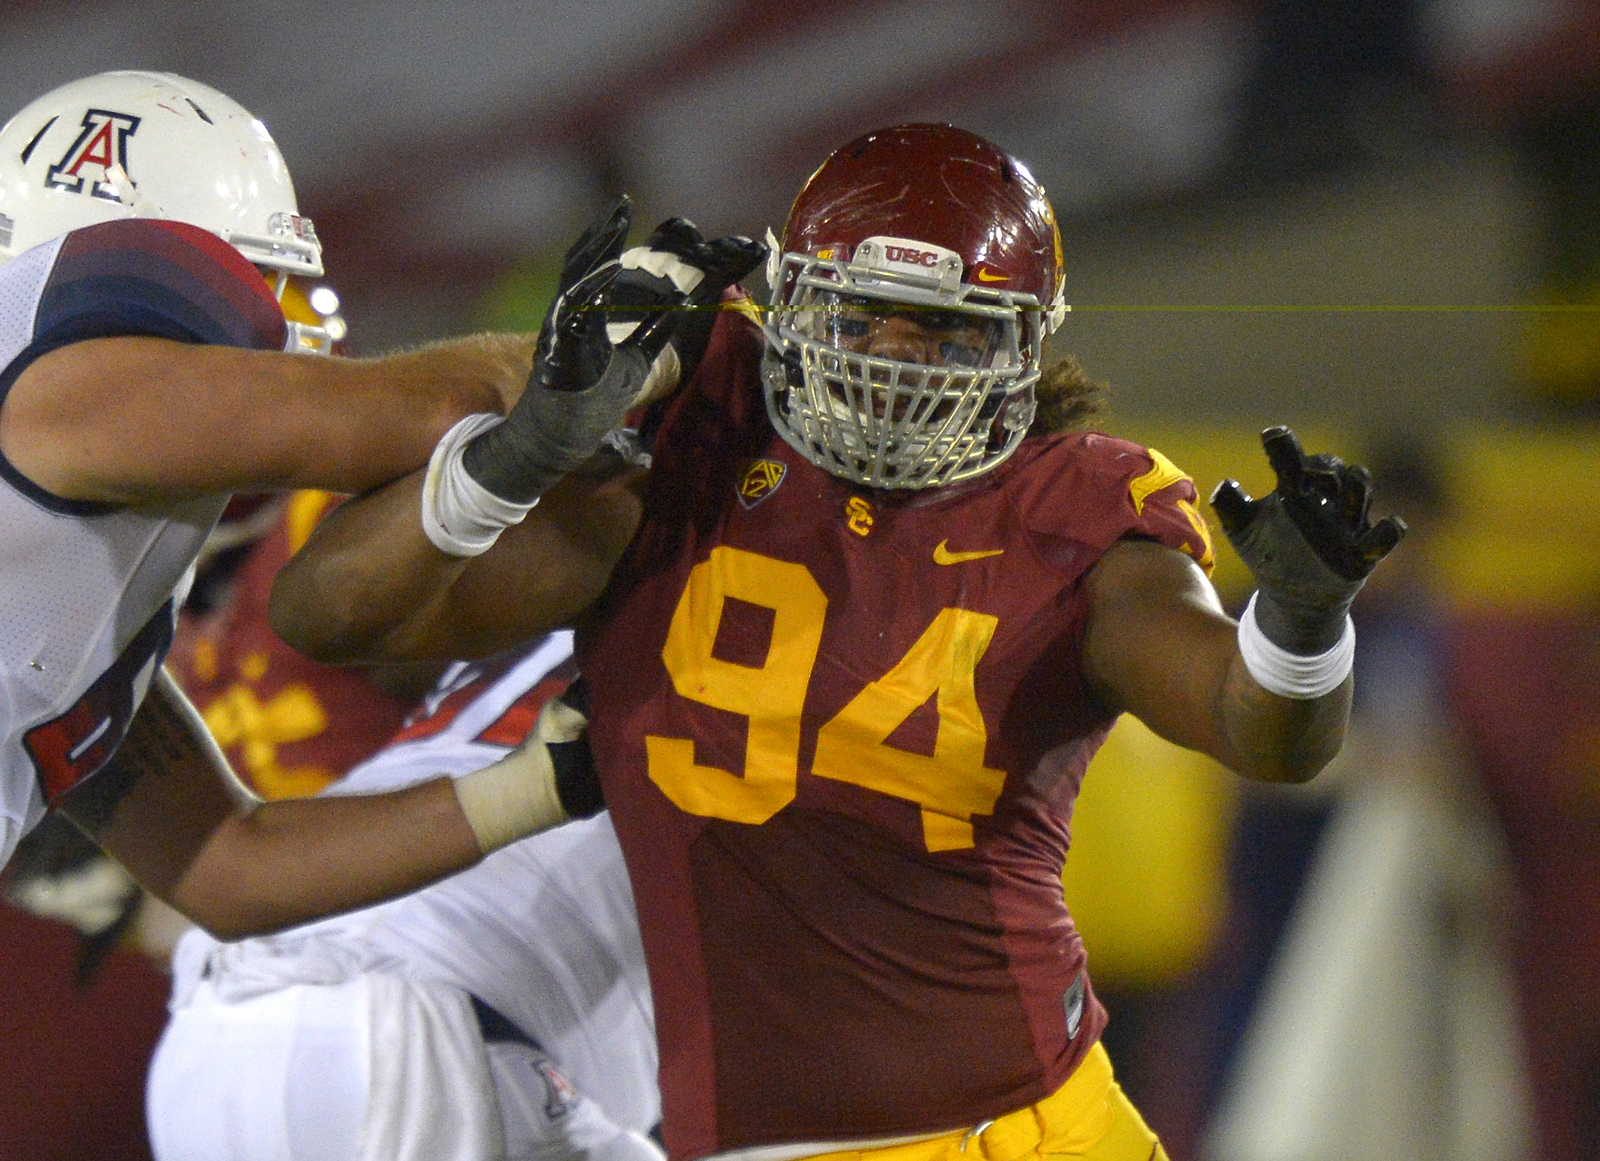 Southern California defensive end Leonard Williams, right, tries to get by Arizona safety RJ Morgan during the second half of their NCAA college football game, Thursday, Oct. 10, 2013, in Los Angeles. USC won 38-31. (Mark J. Terrill/Associated Press)